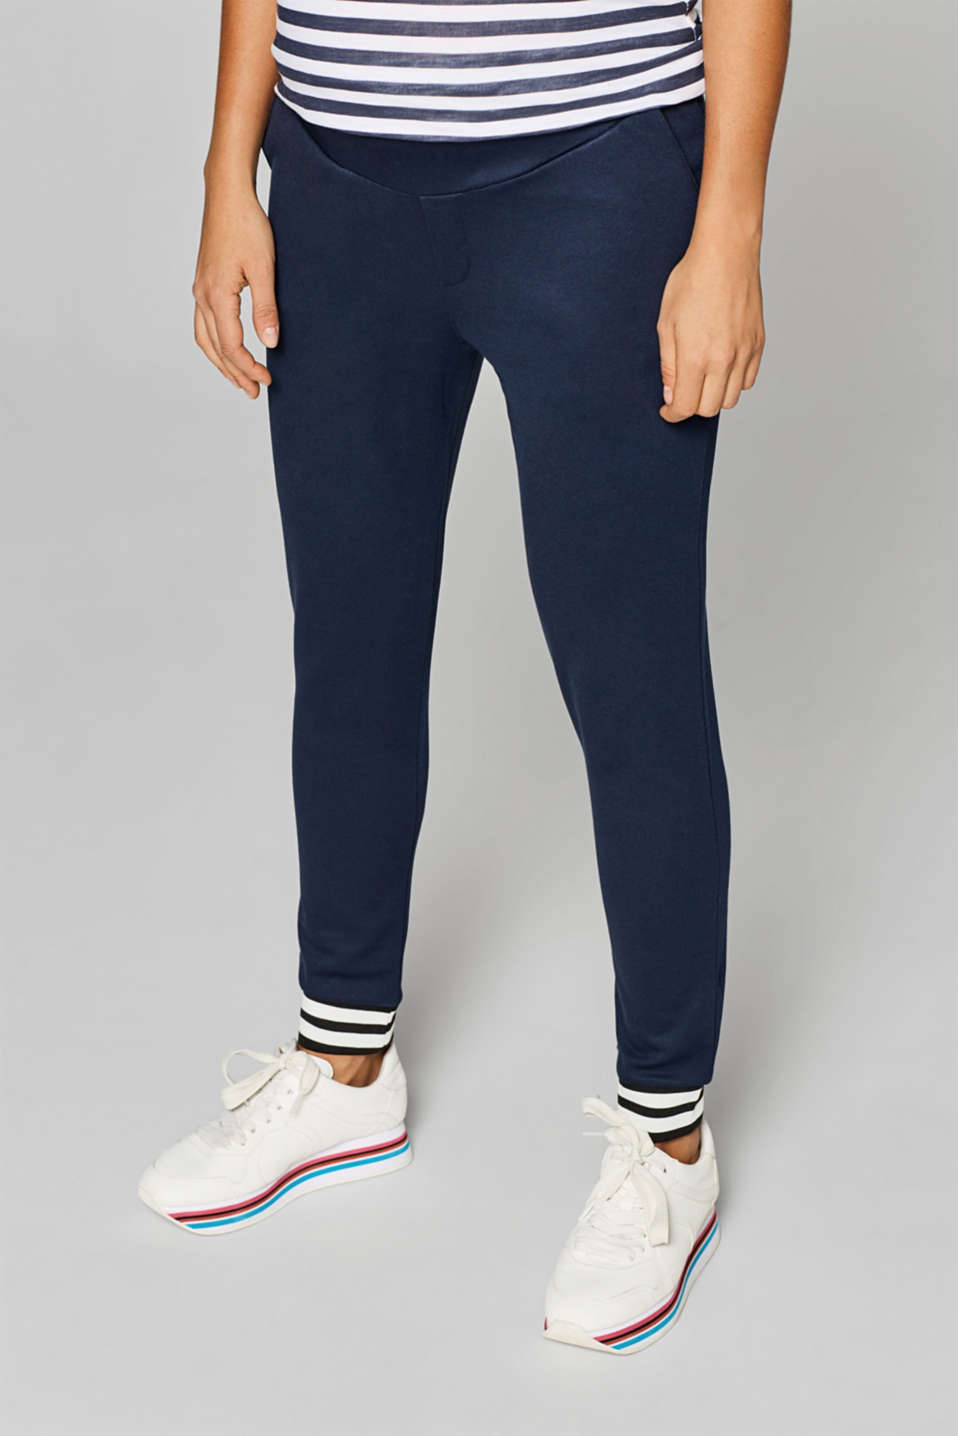 Esprit - Pantaloni in jersey stretch con orli a righe